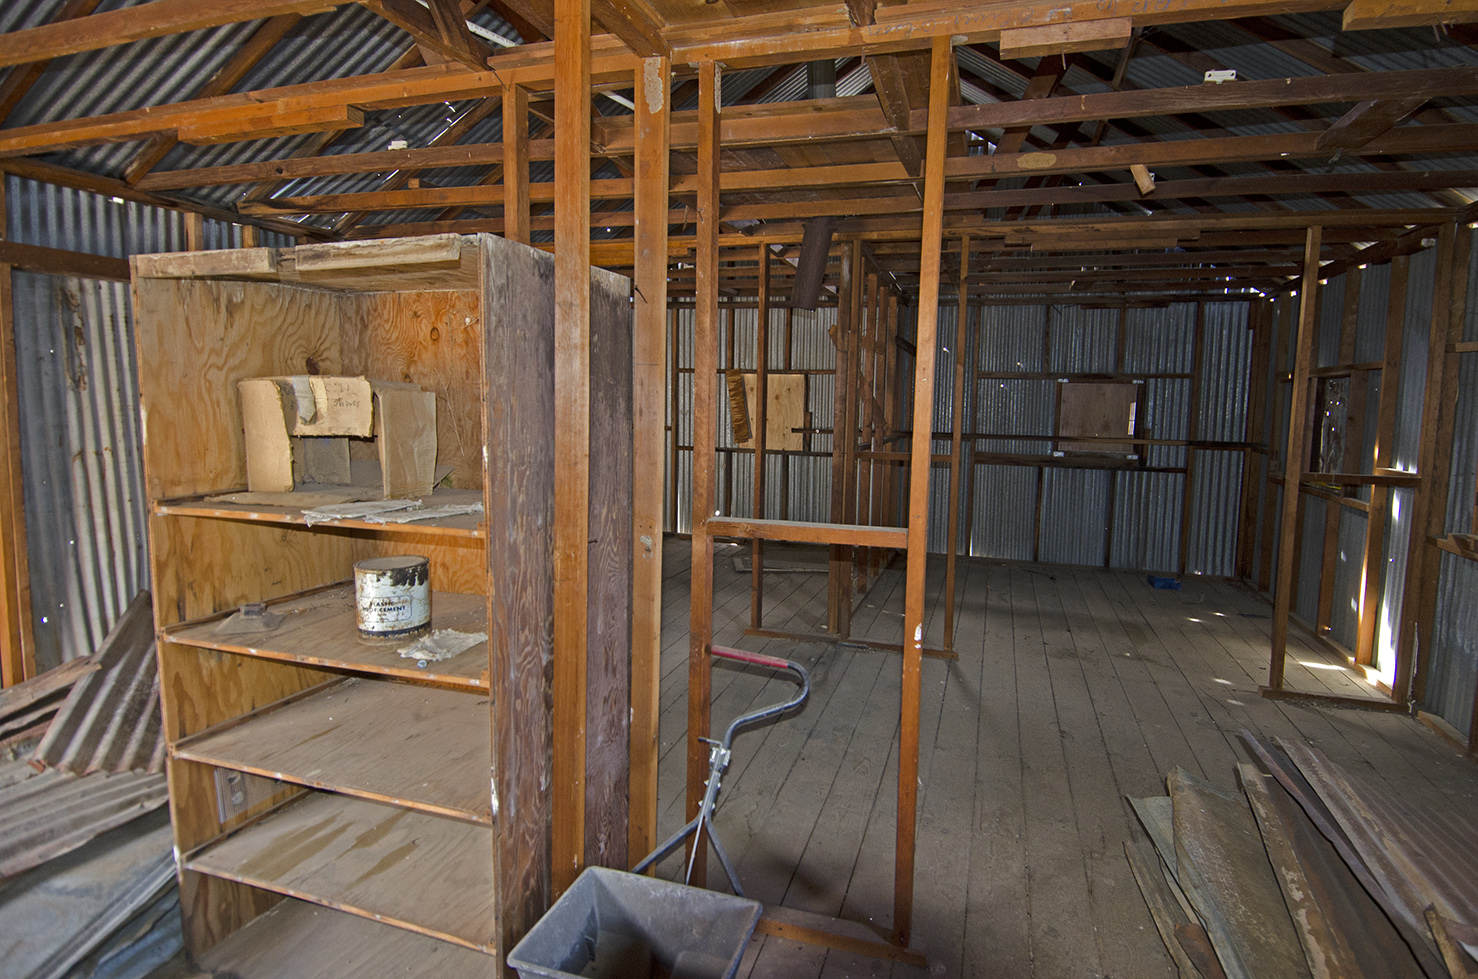 Inside the bunkhouse. It looks as though it may have had a few individual rooms.